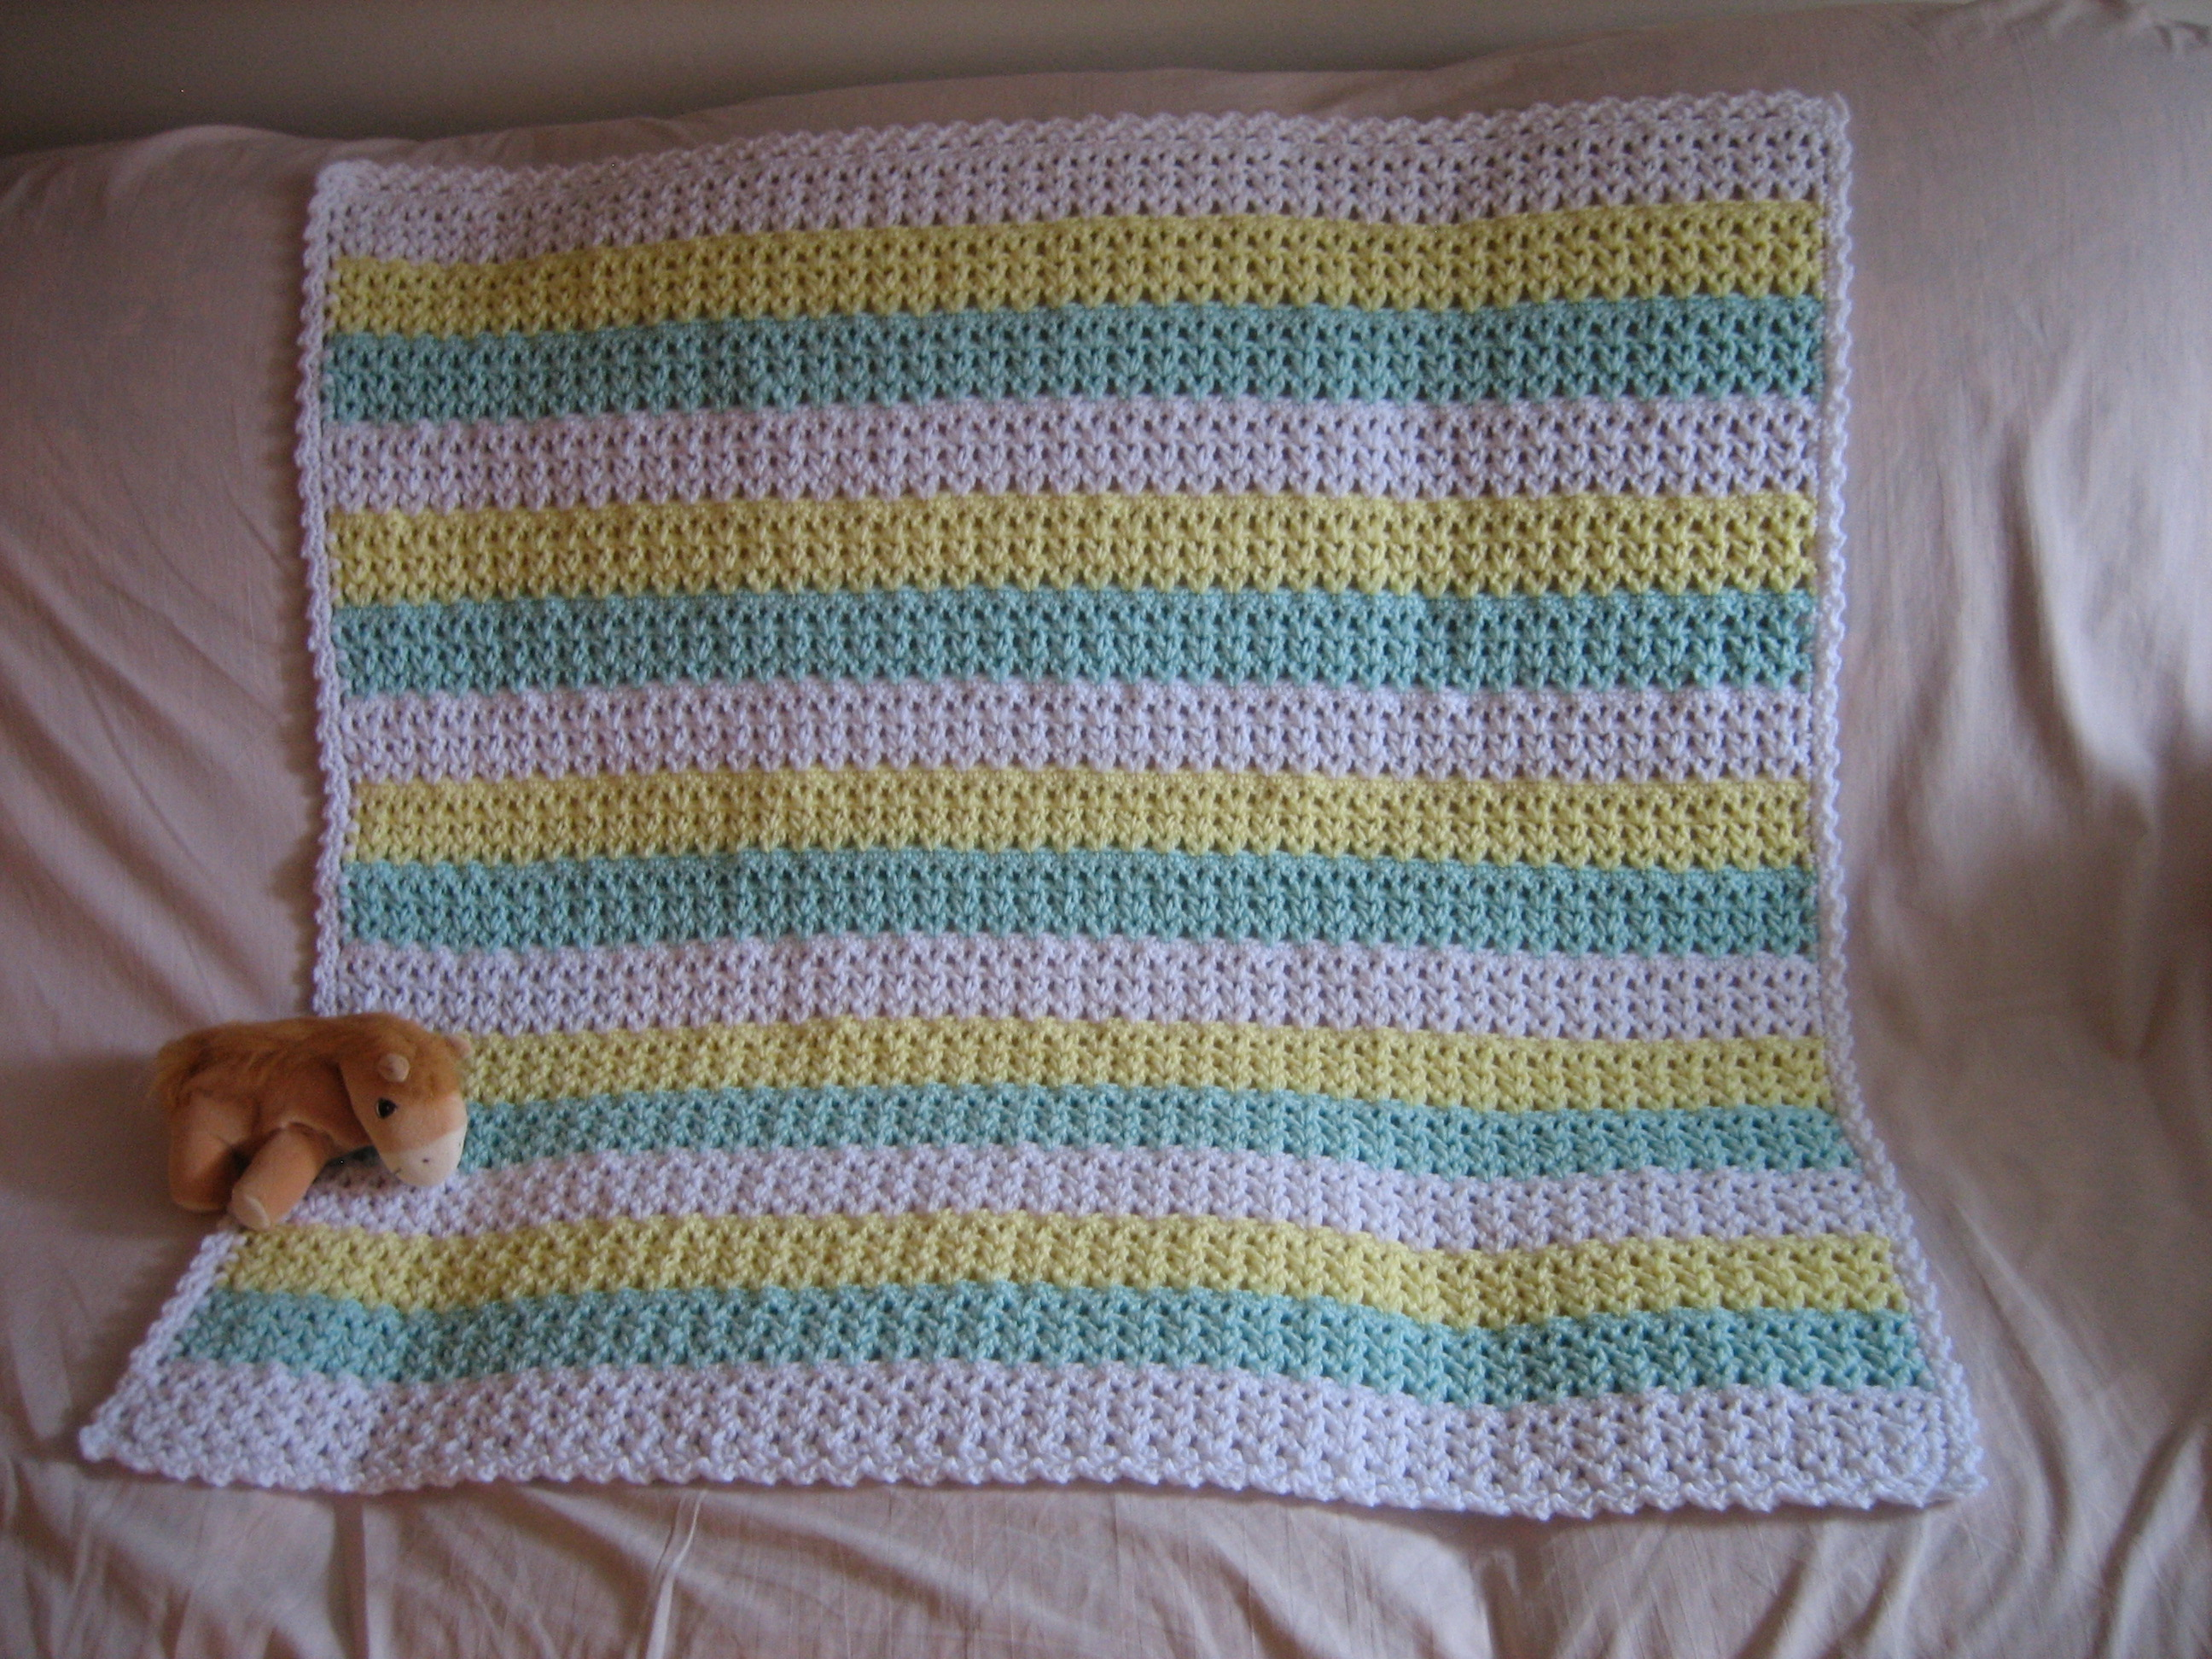 Crocheting A Baby Blanket For Beginners : BABY BLANKET CROCHET EASY PATTERN VERY Crochet Patterns